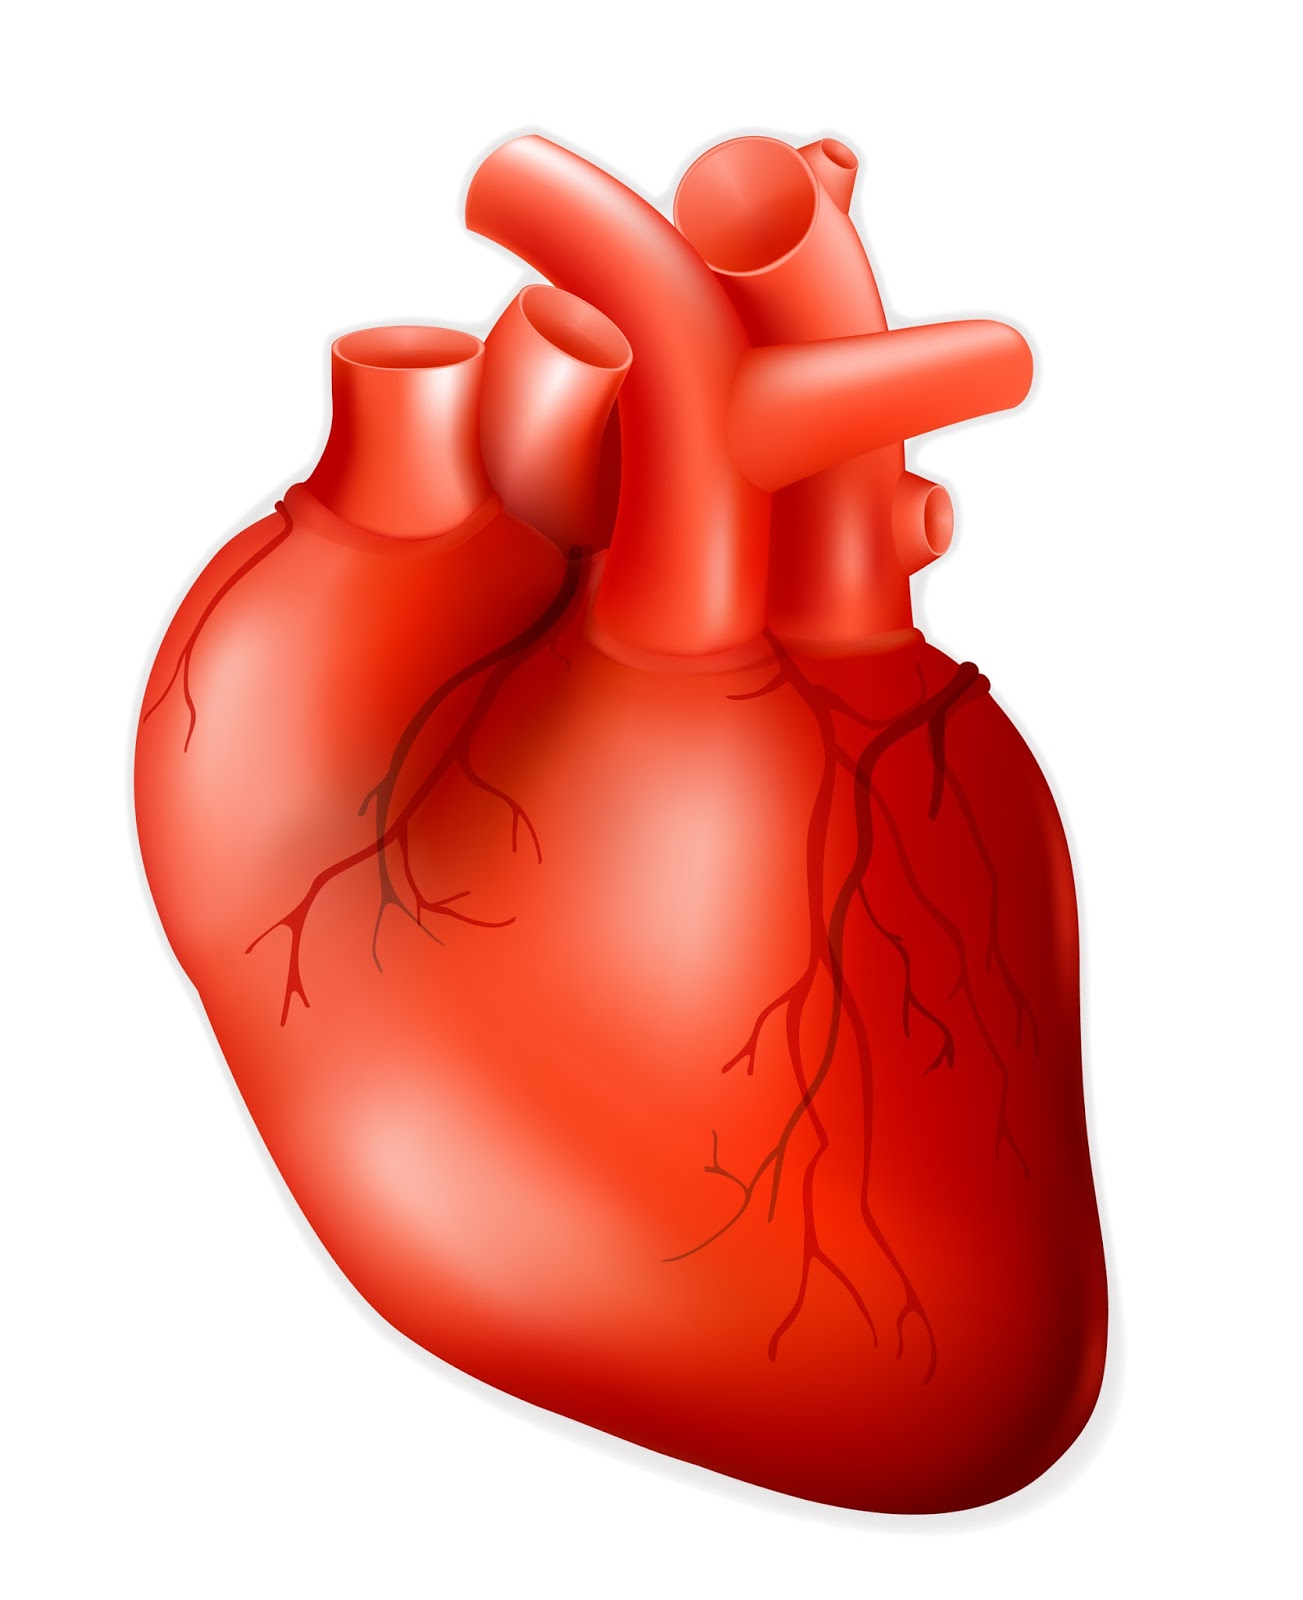 1303x1600 Human Heart Clipart Image Hands Holding